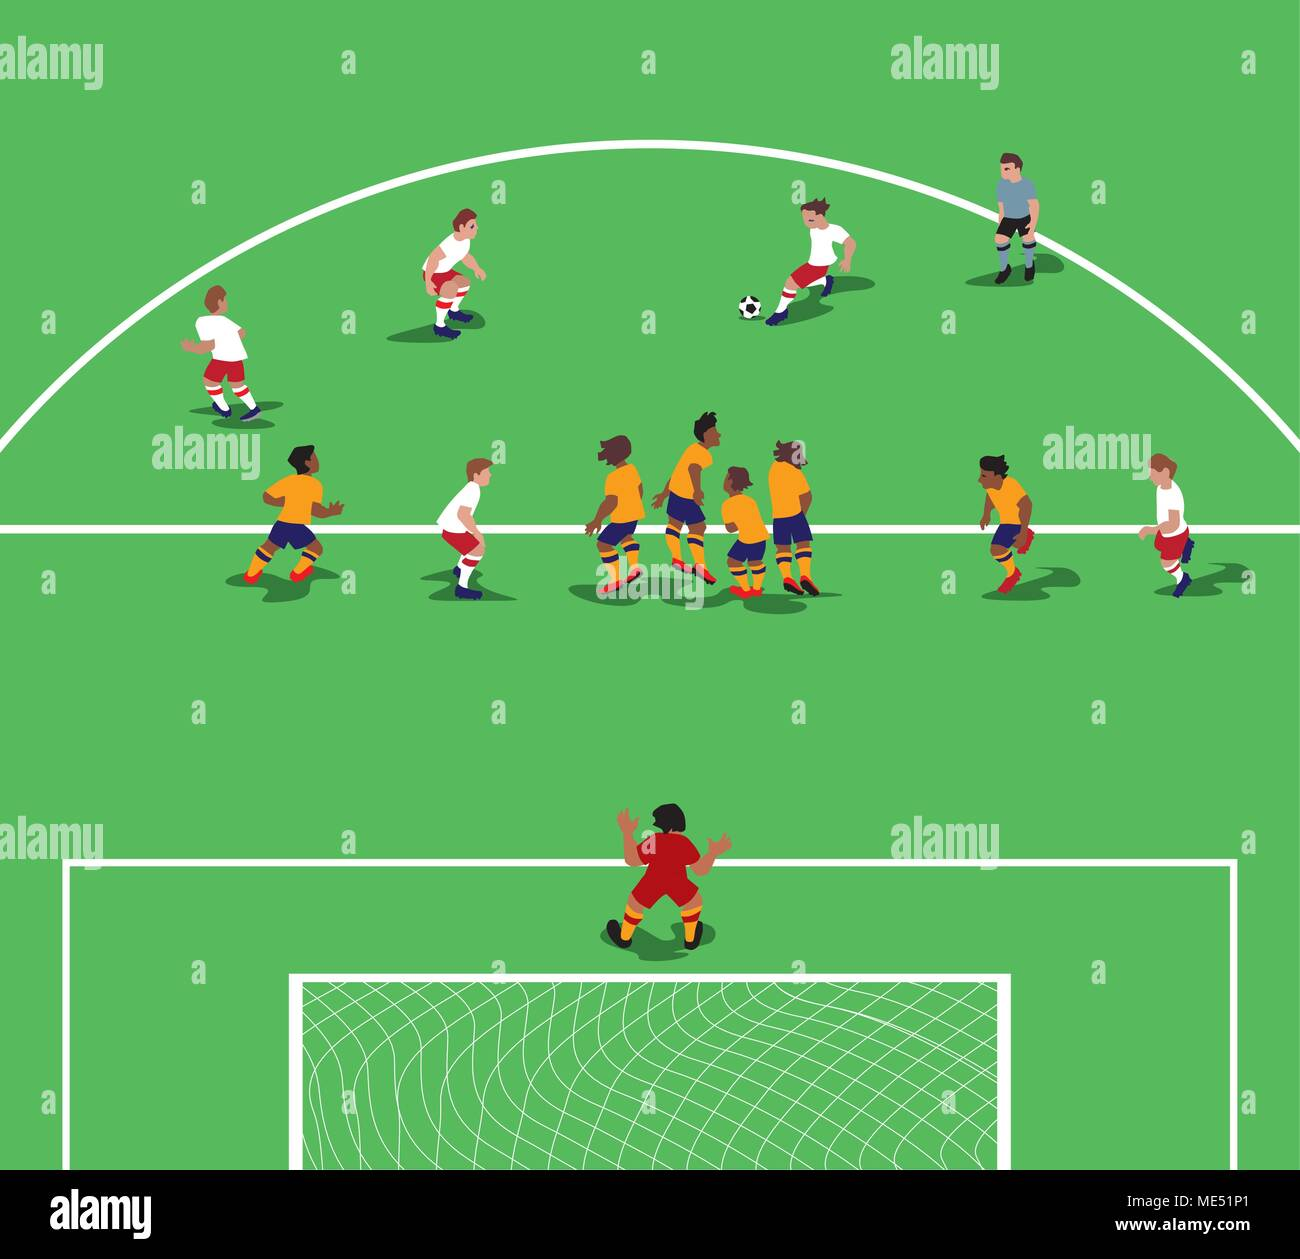 Vector illustration of Soccer wall. Free kick situation in flat design. - Stock Vector